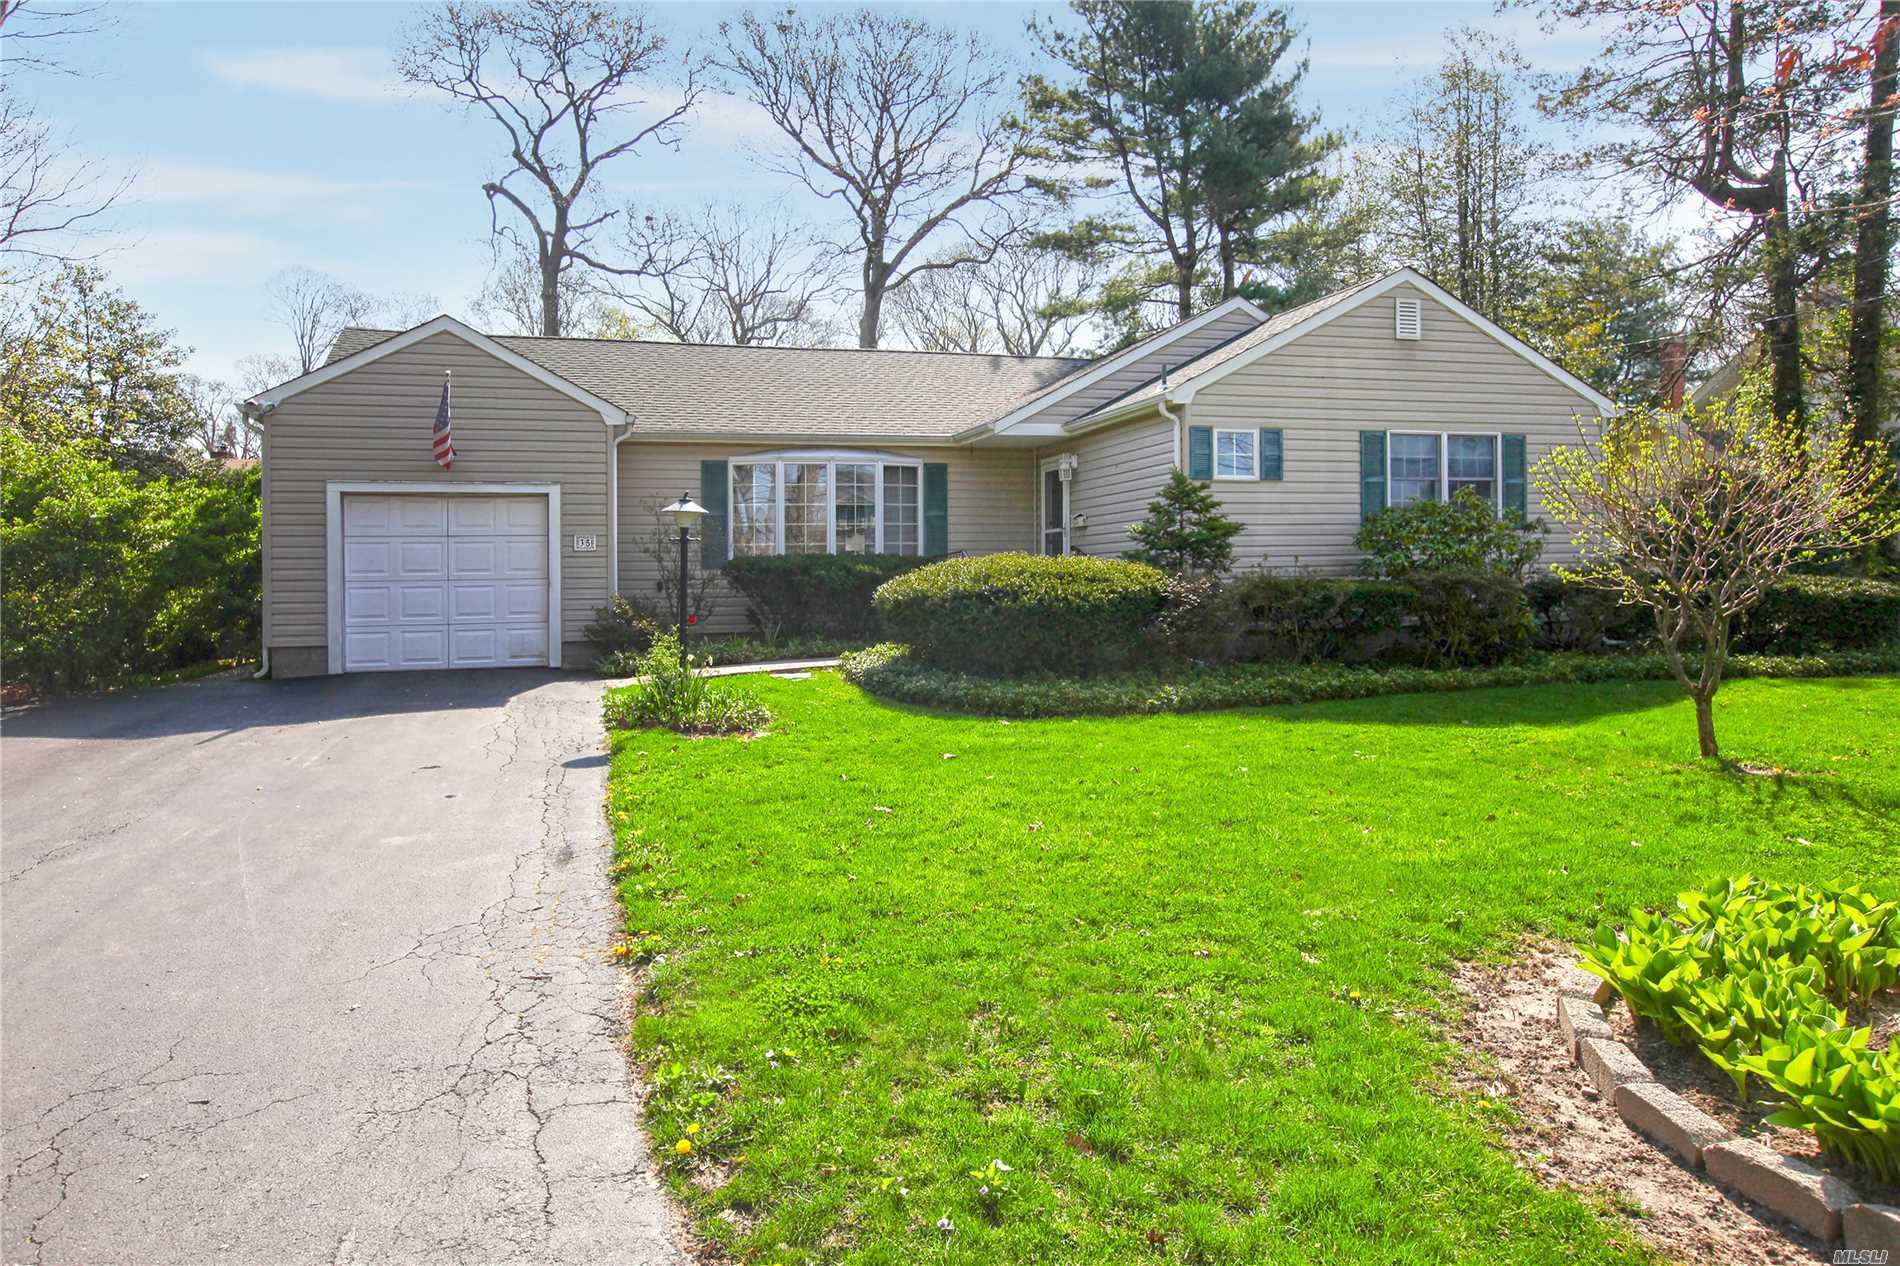 35 Wyant Ave - Lake Ronkonkoma, New York